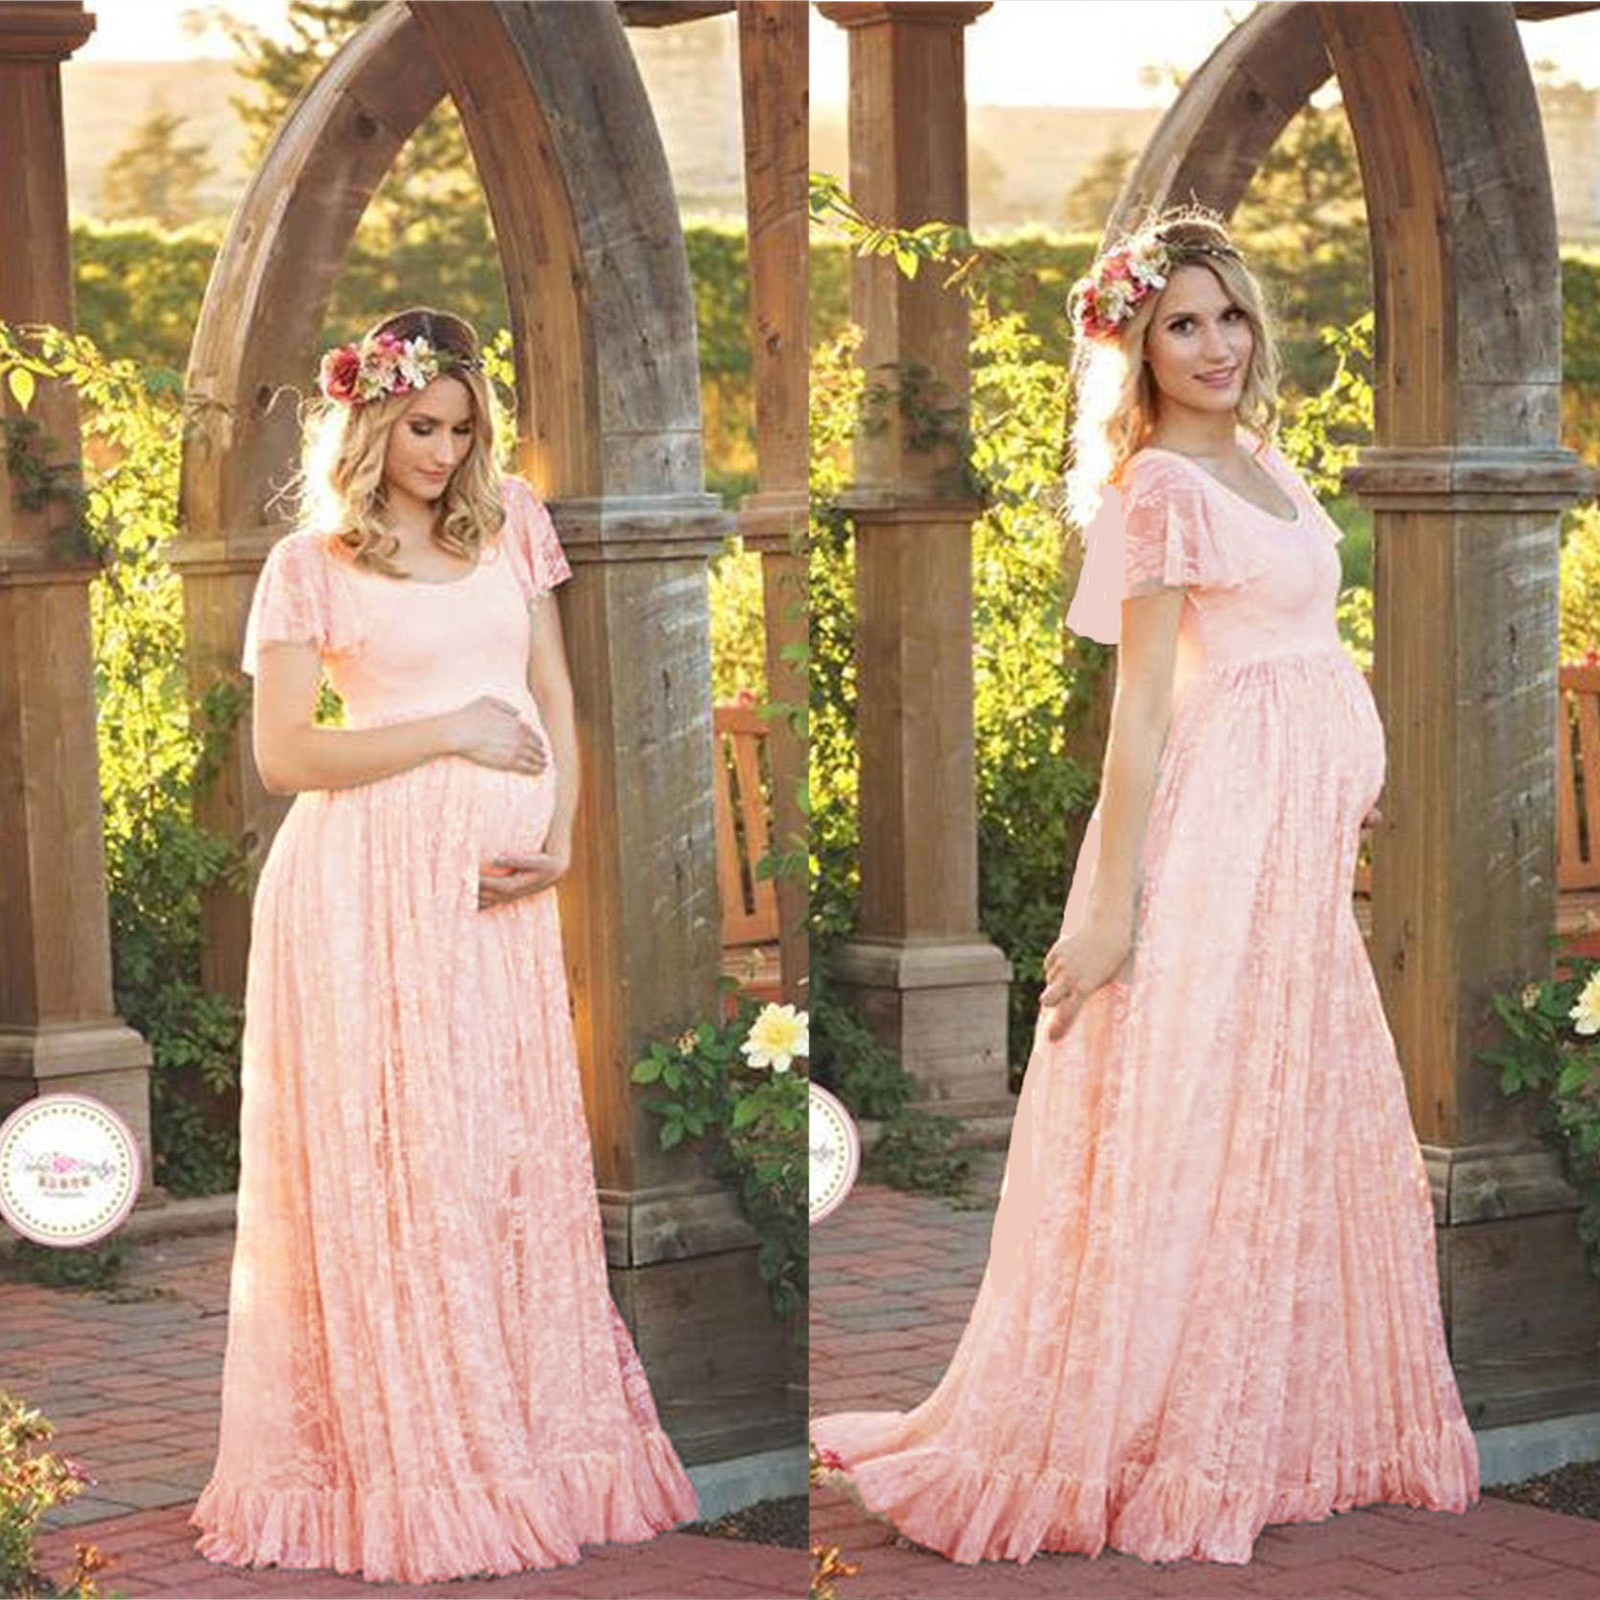 Maxi Pregnant Women Lace Gown Maternity Photography Photo Shoot ...